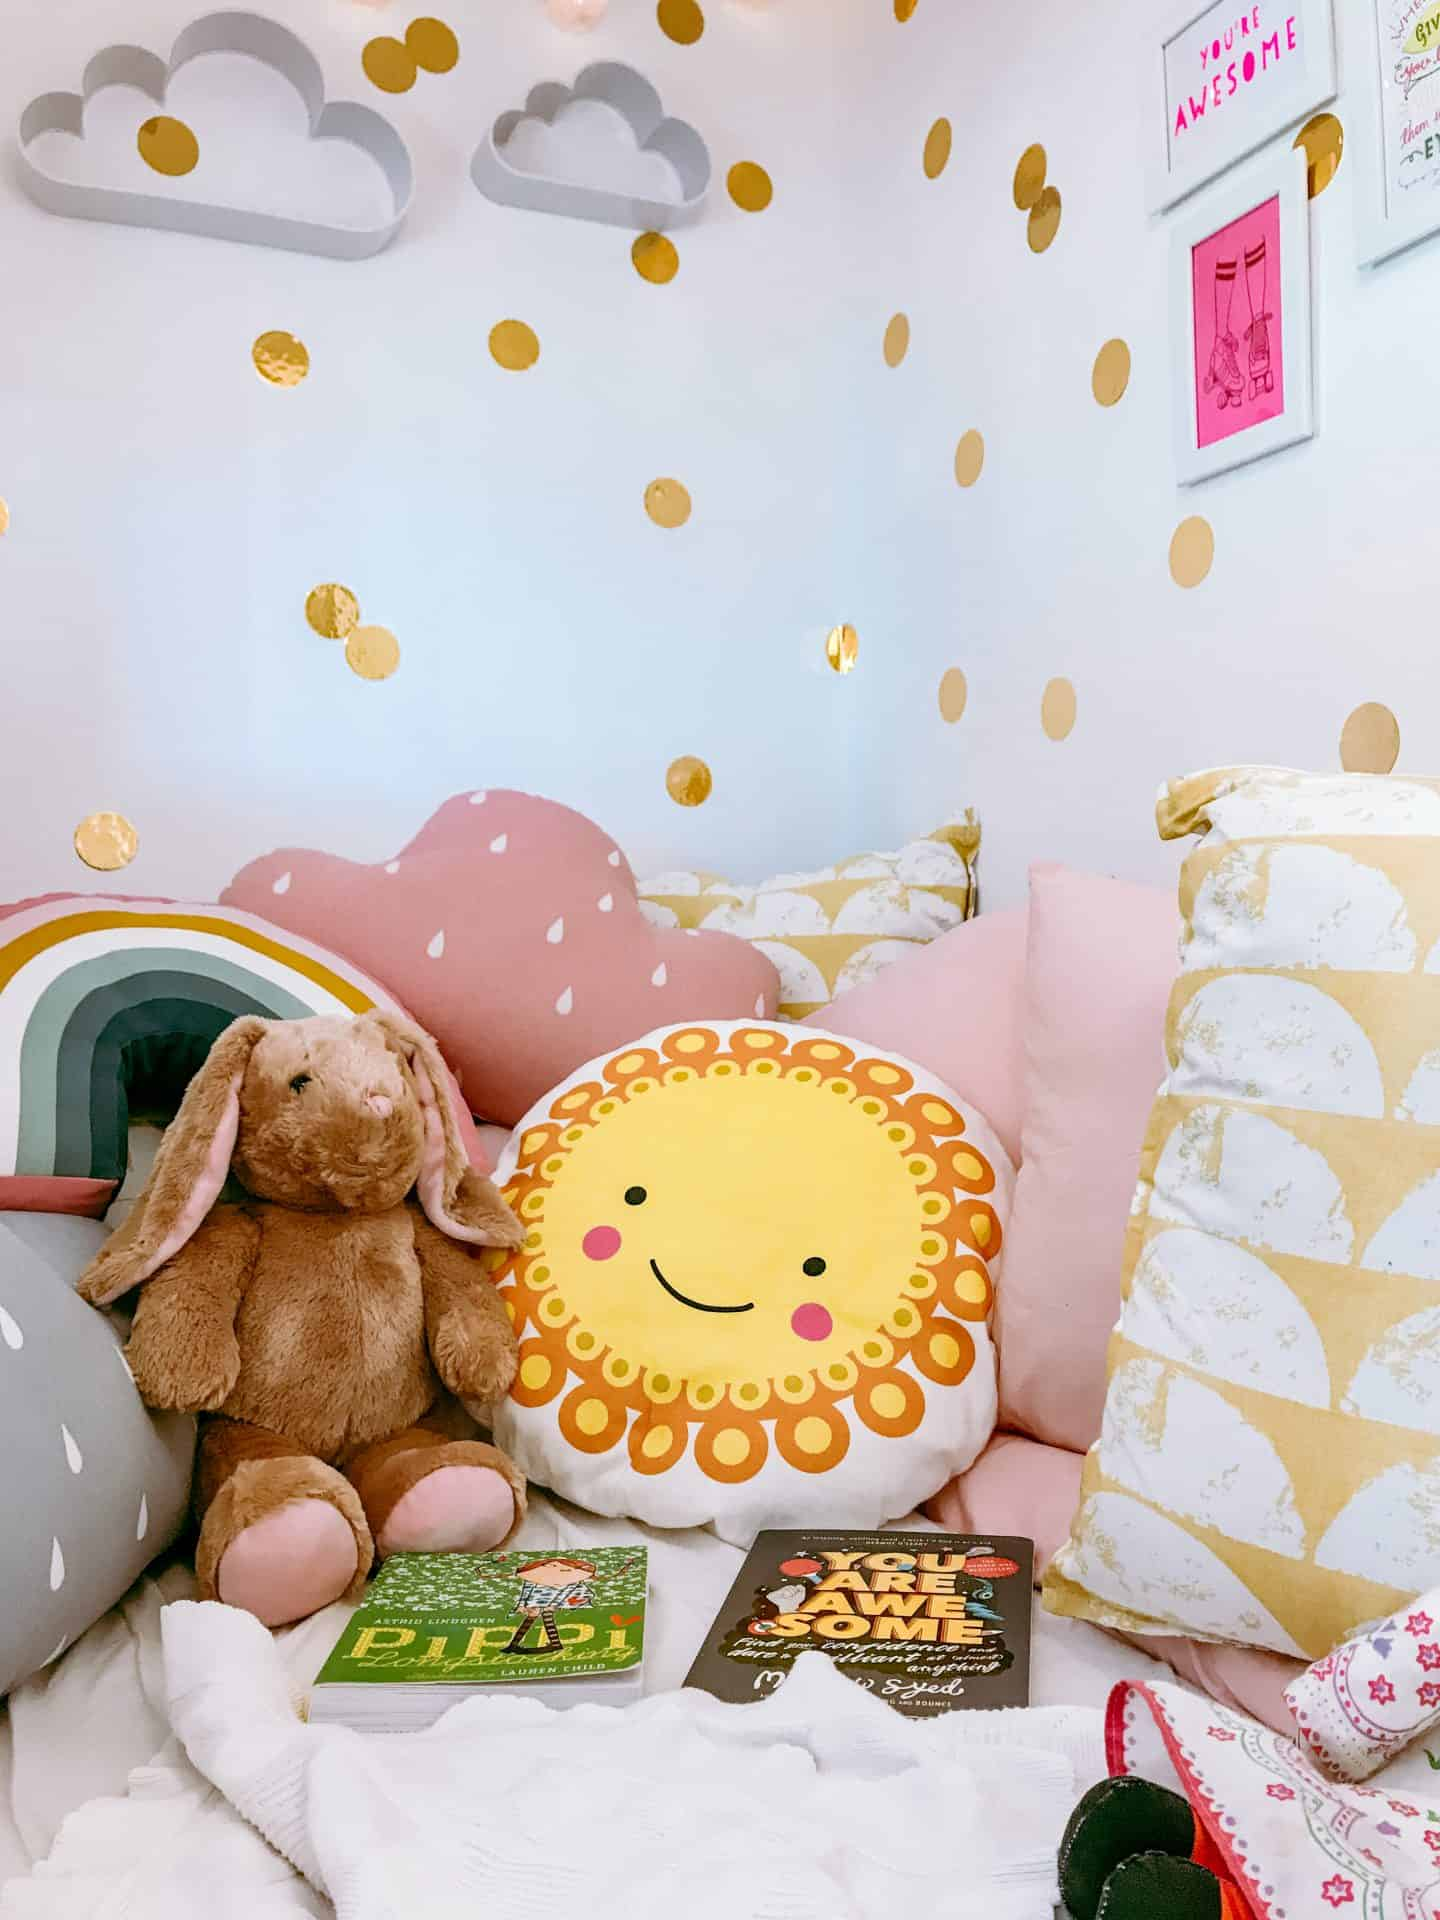 Kids' den with lots of pink and yellow cushions, books and cuddly toys, cloud shelves and gold wall decals